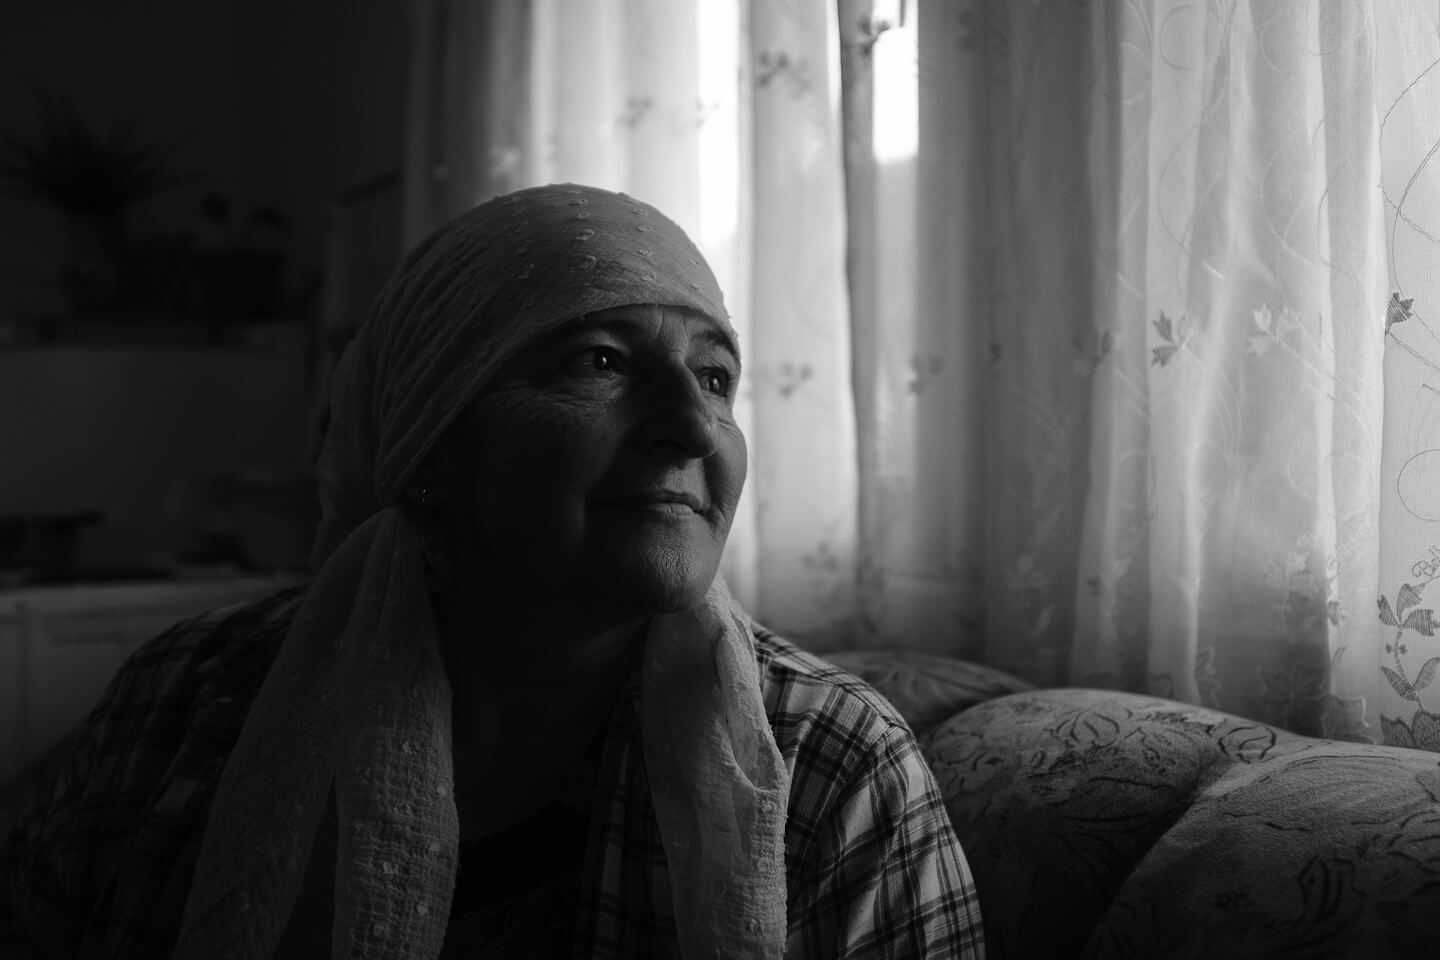 Devleta Omerovi, mother of two adult sons, in her home in a refugee camp in Jezevac.